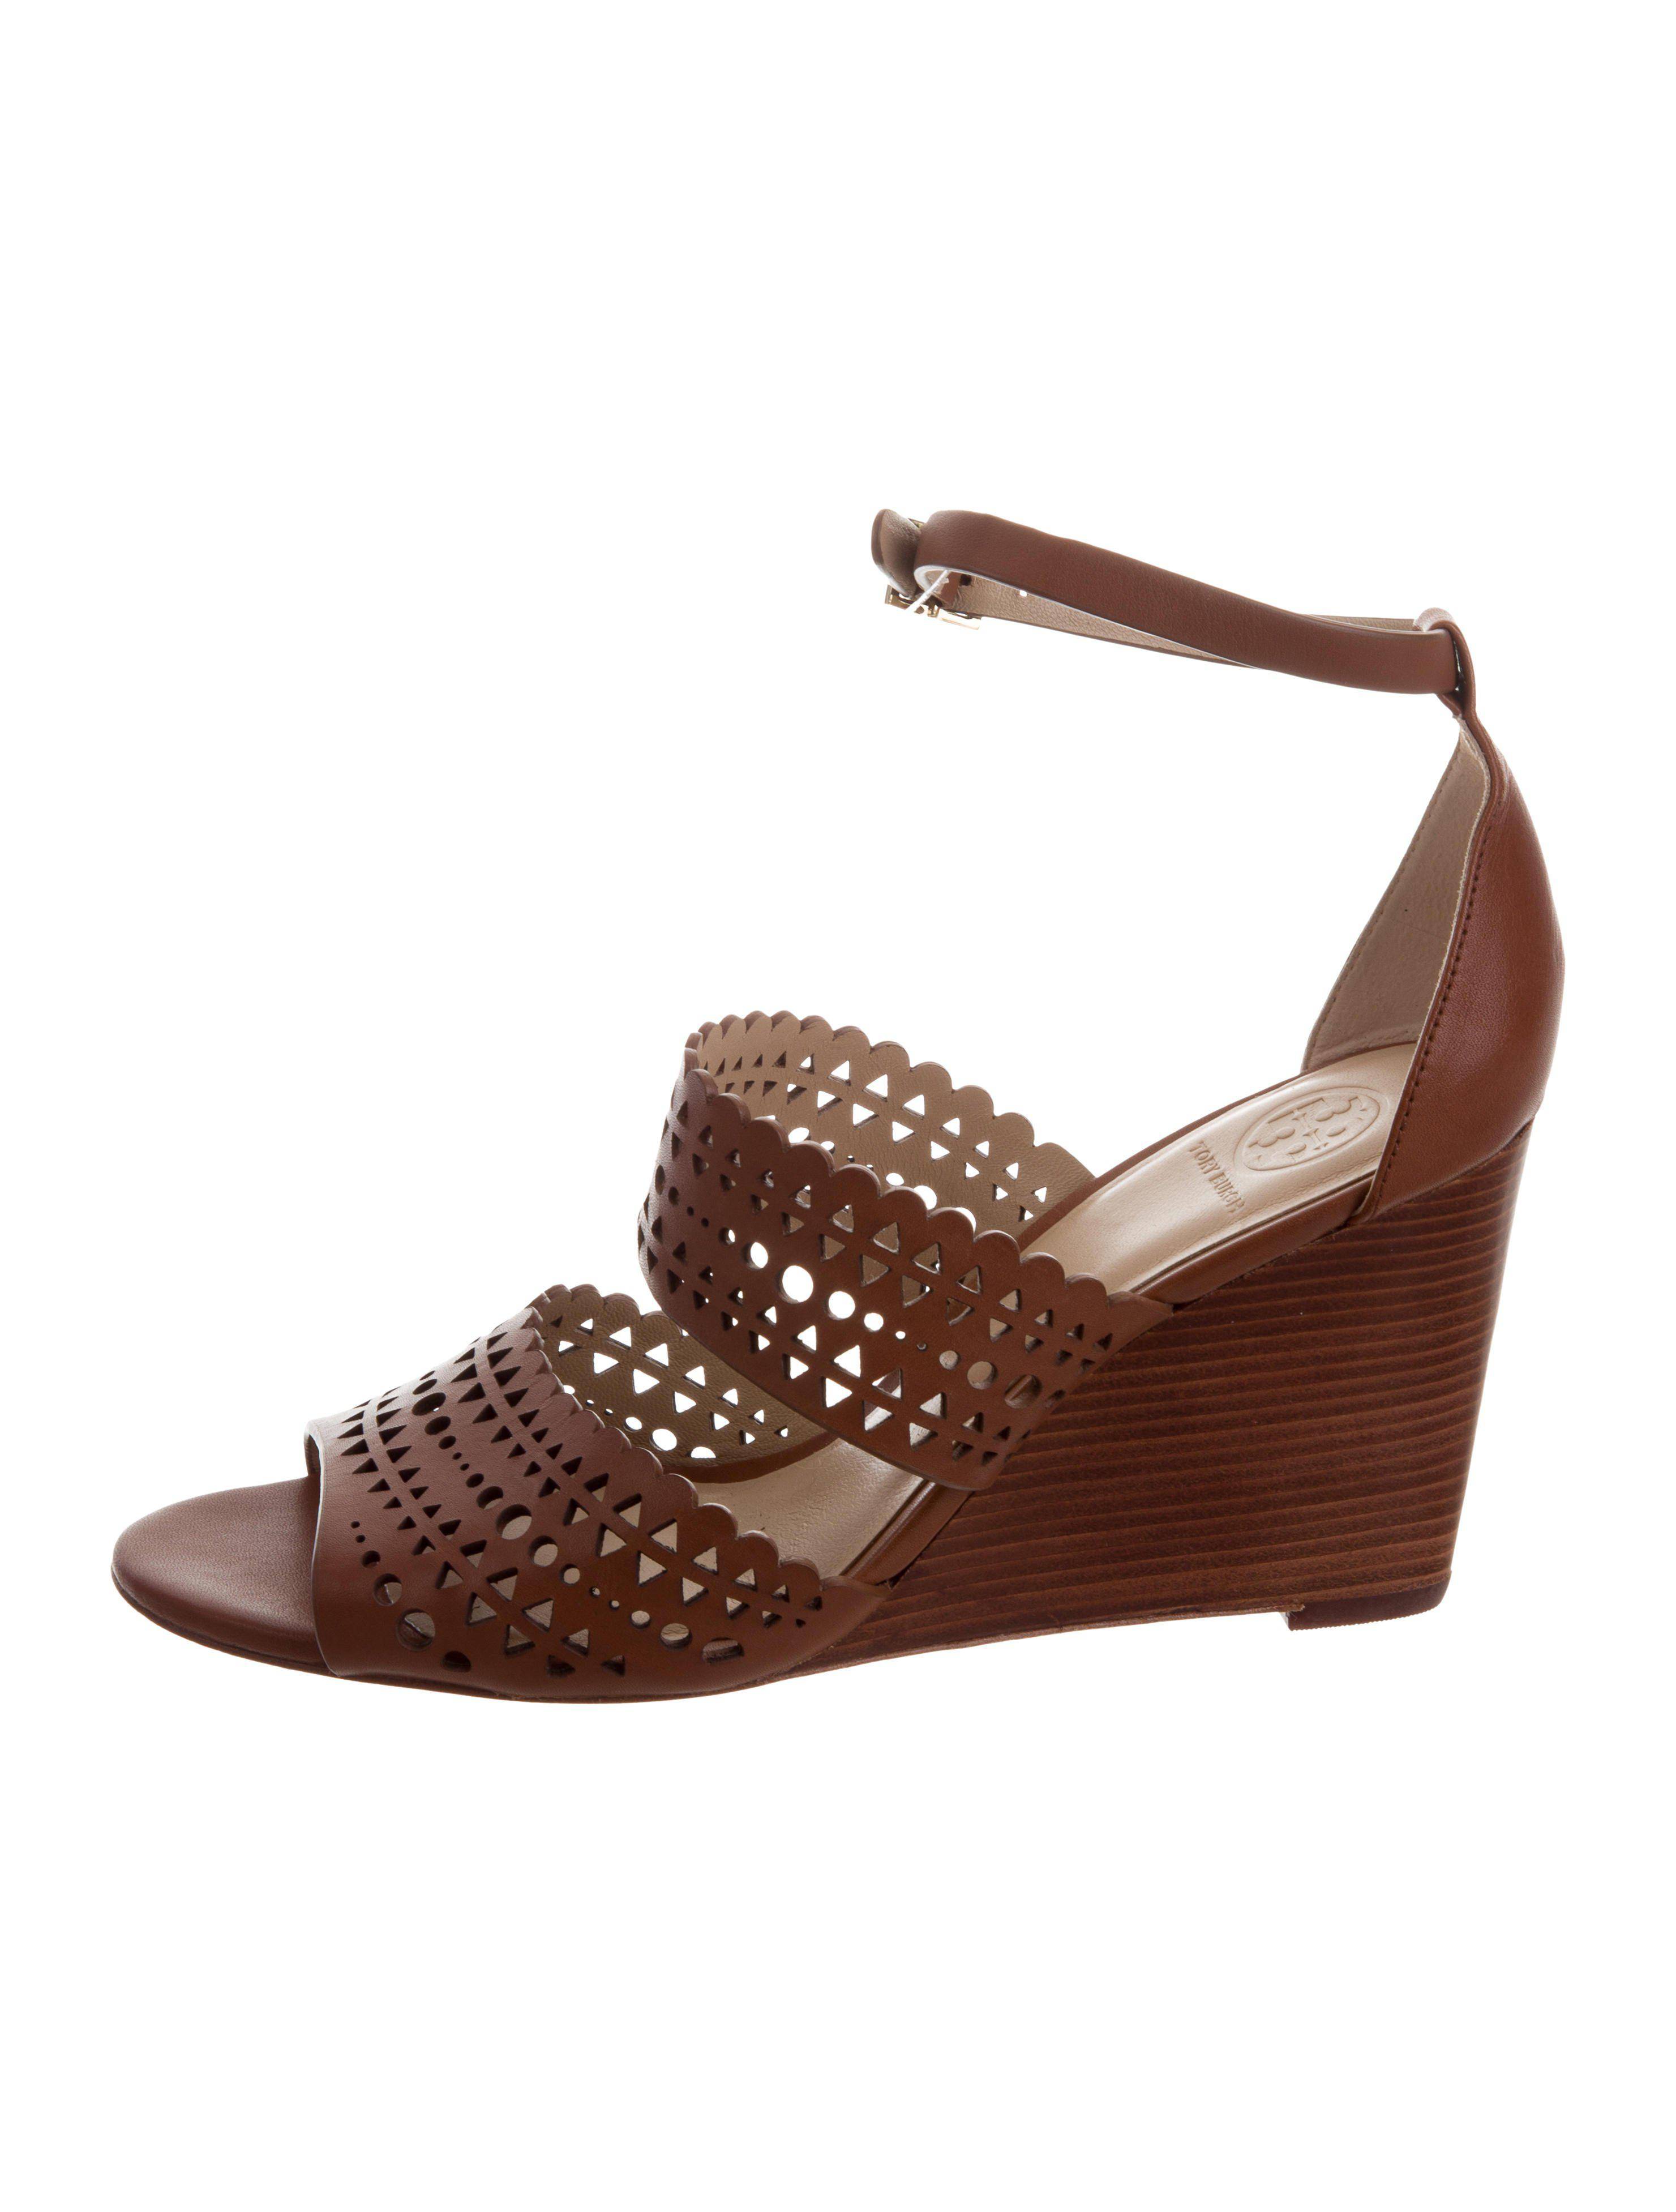 989505cab Lyst - Tory Burch Leather Laser Cut Wedges in Brown